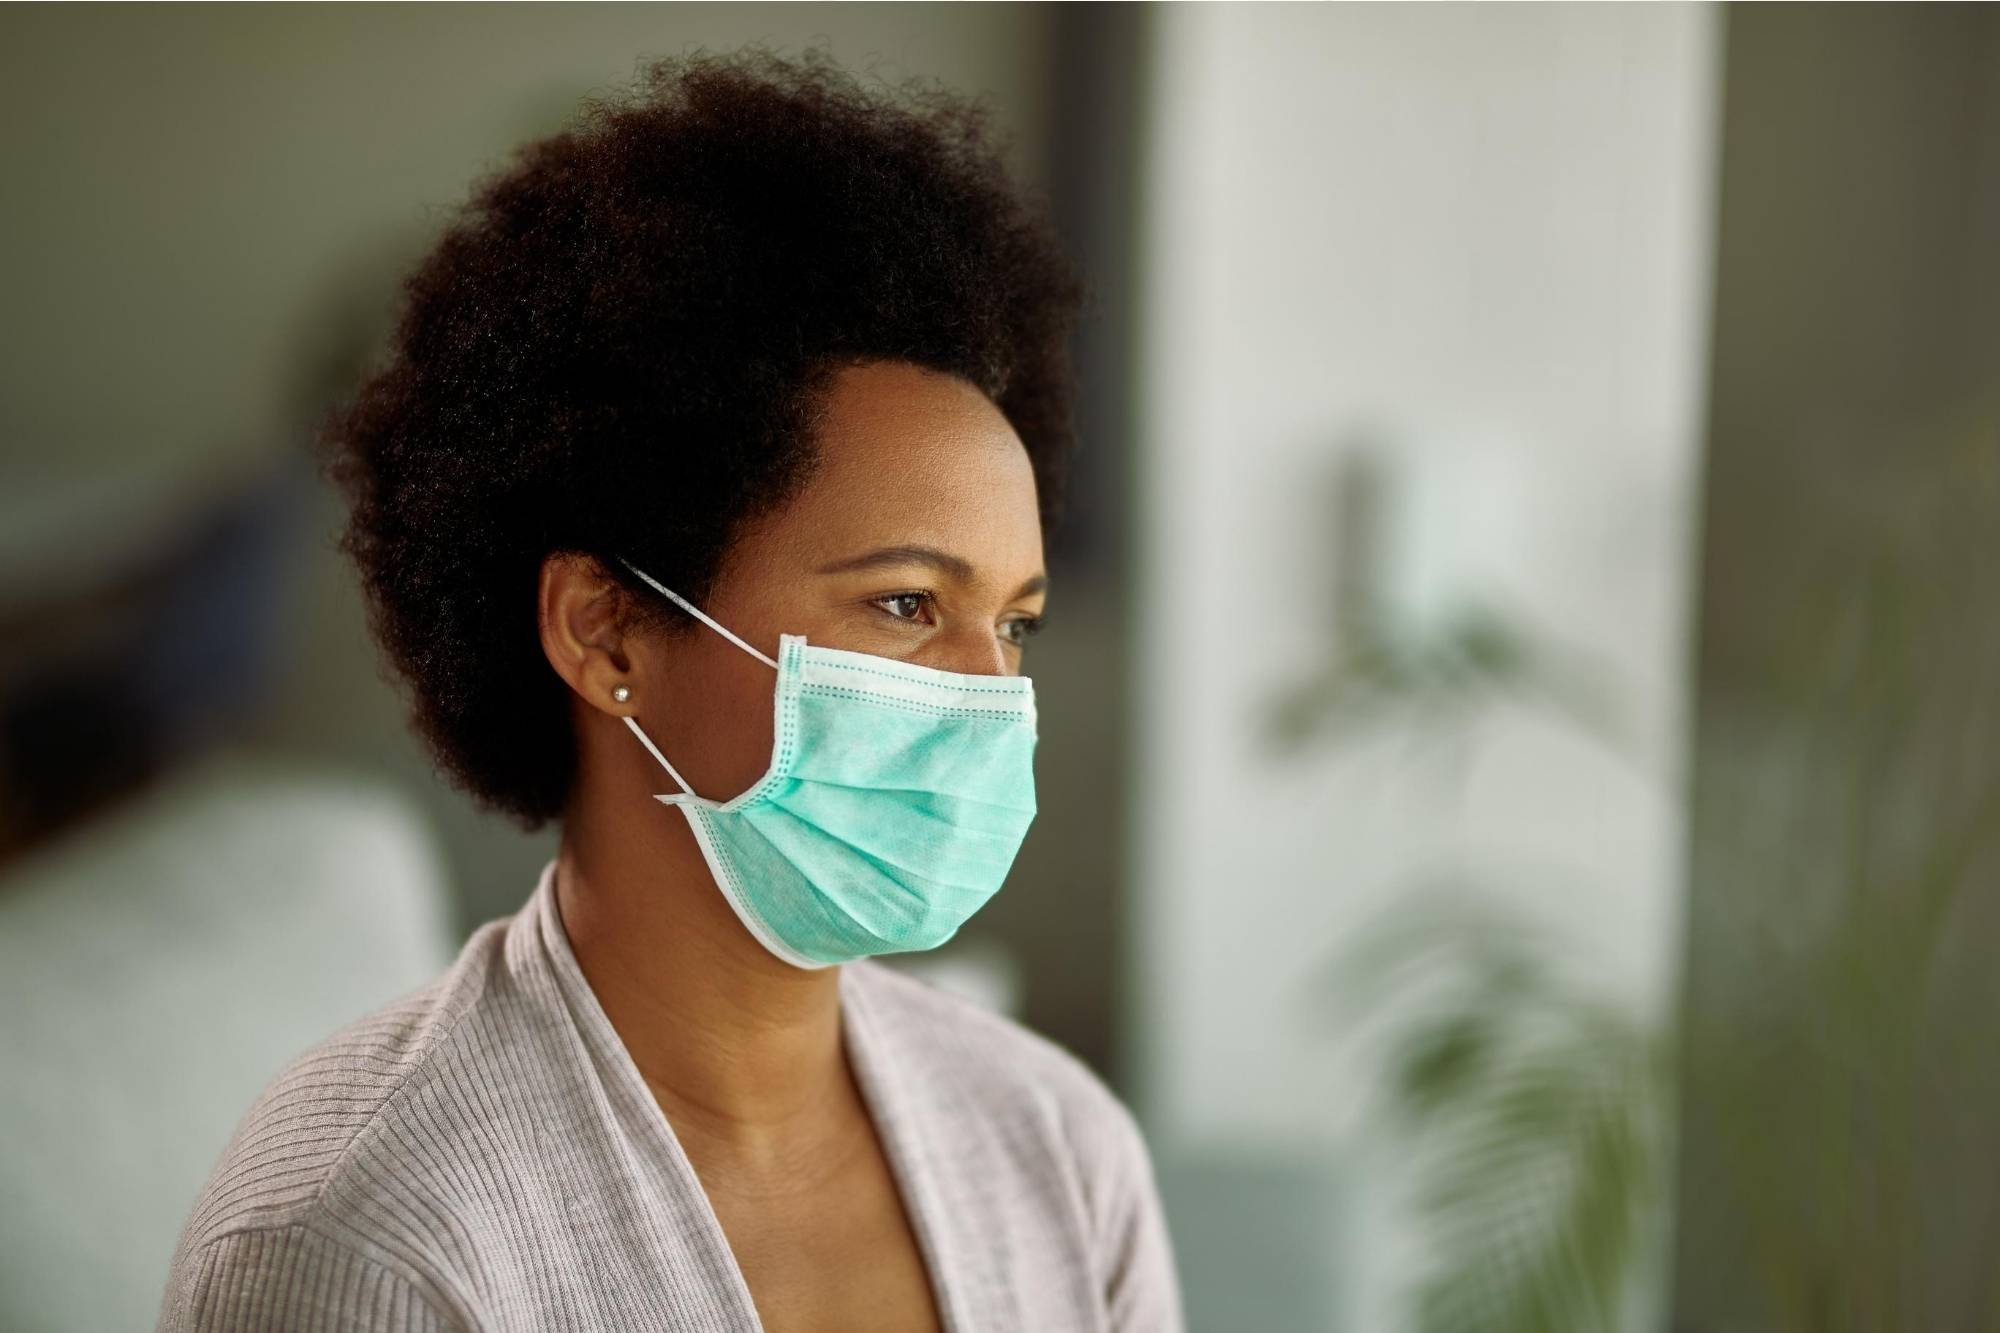 Short haired woman wearing blue face mask